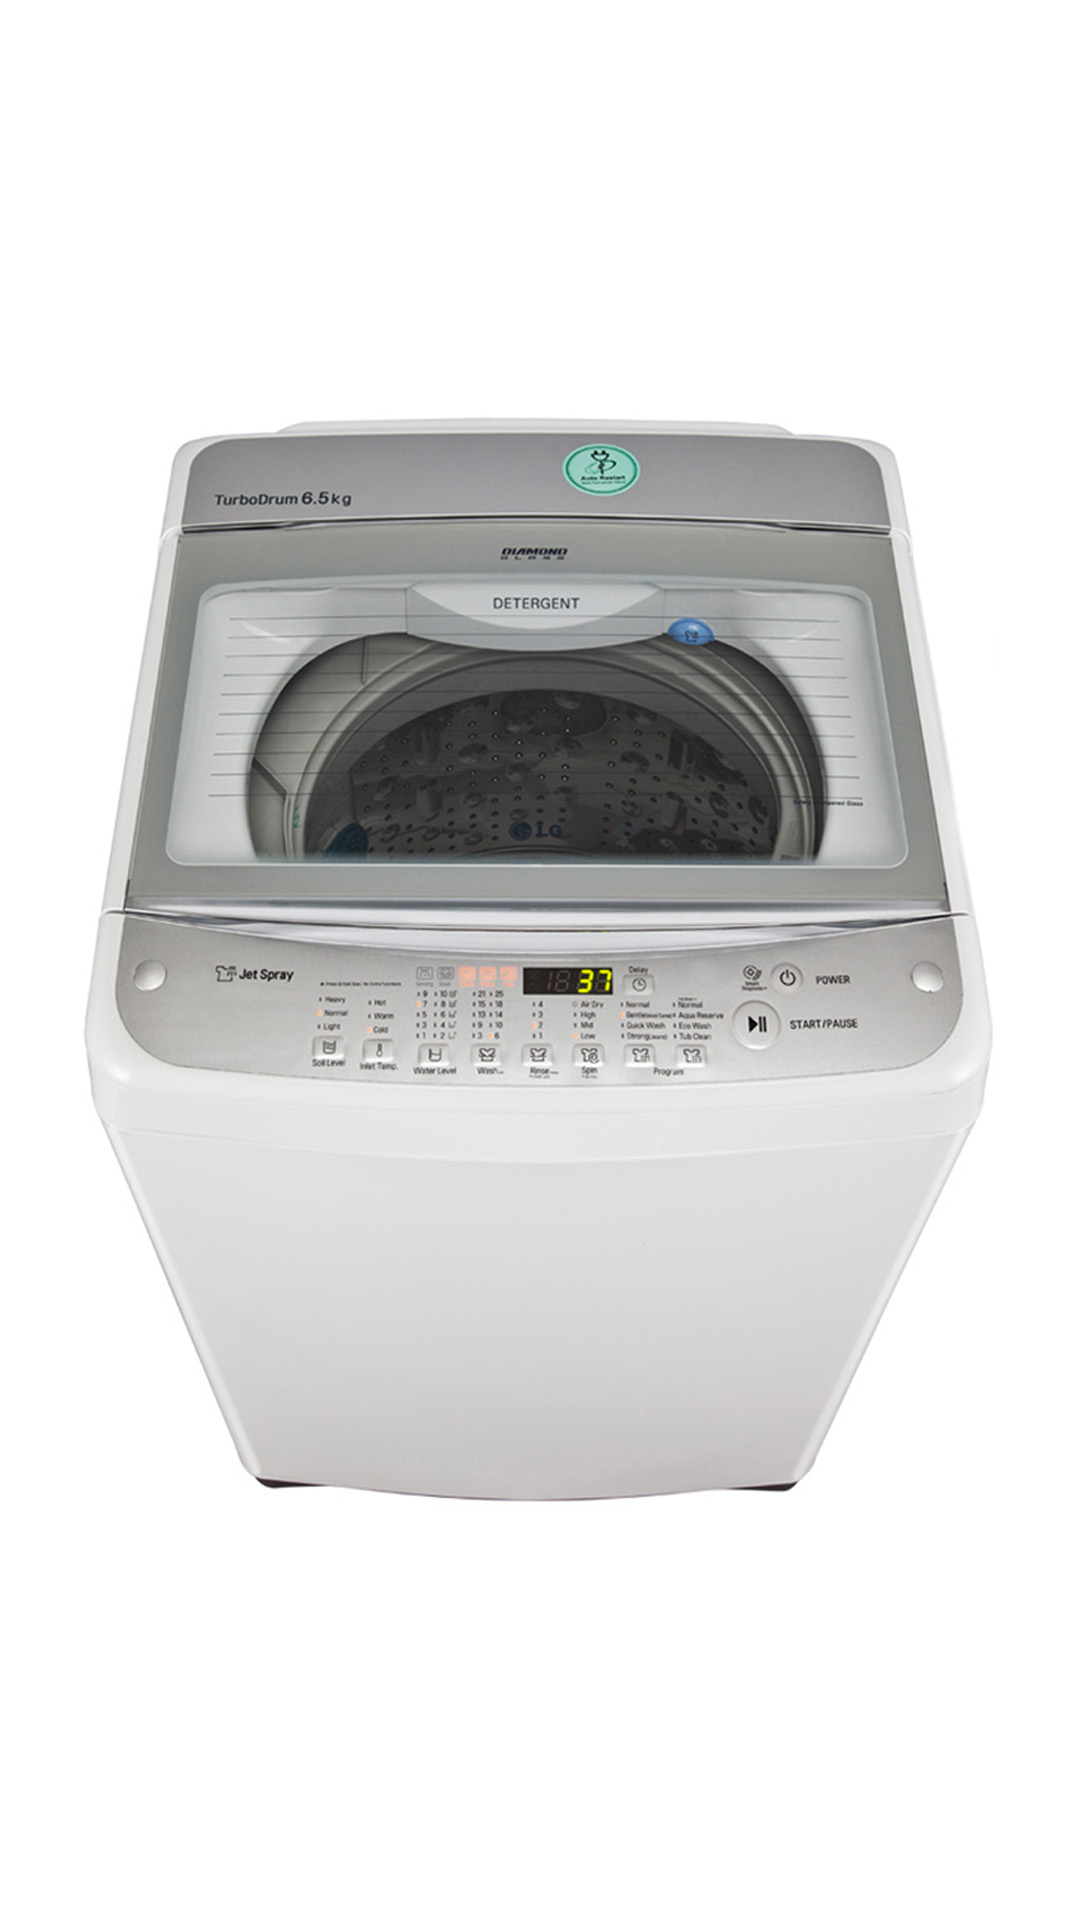 LG T7568TEEL Fully Automatic Top Loading 6.5 KG Washing Machine (White)